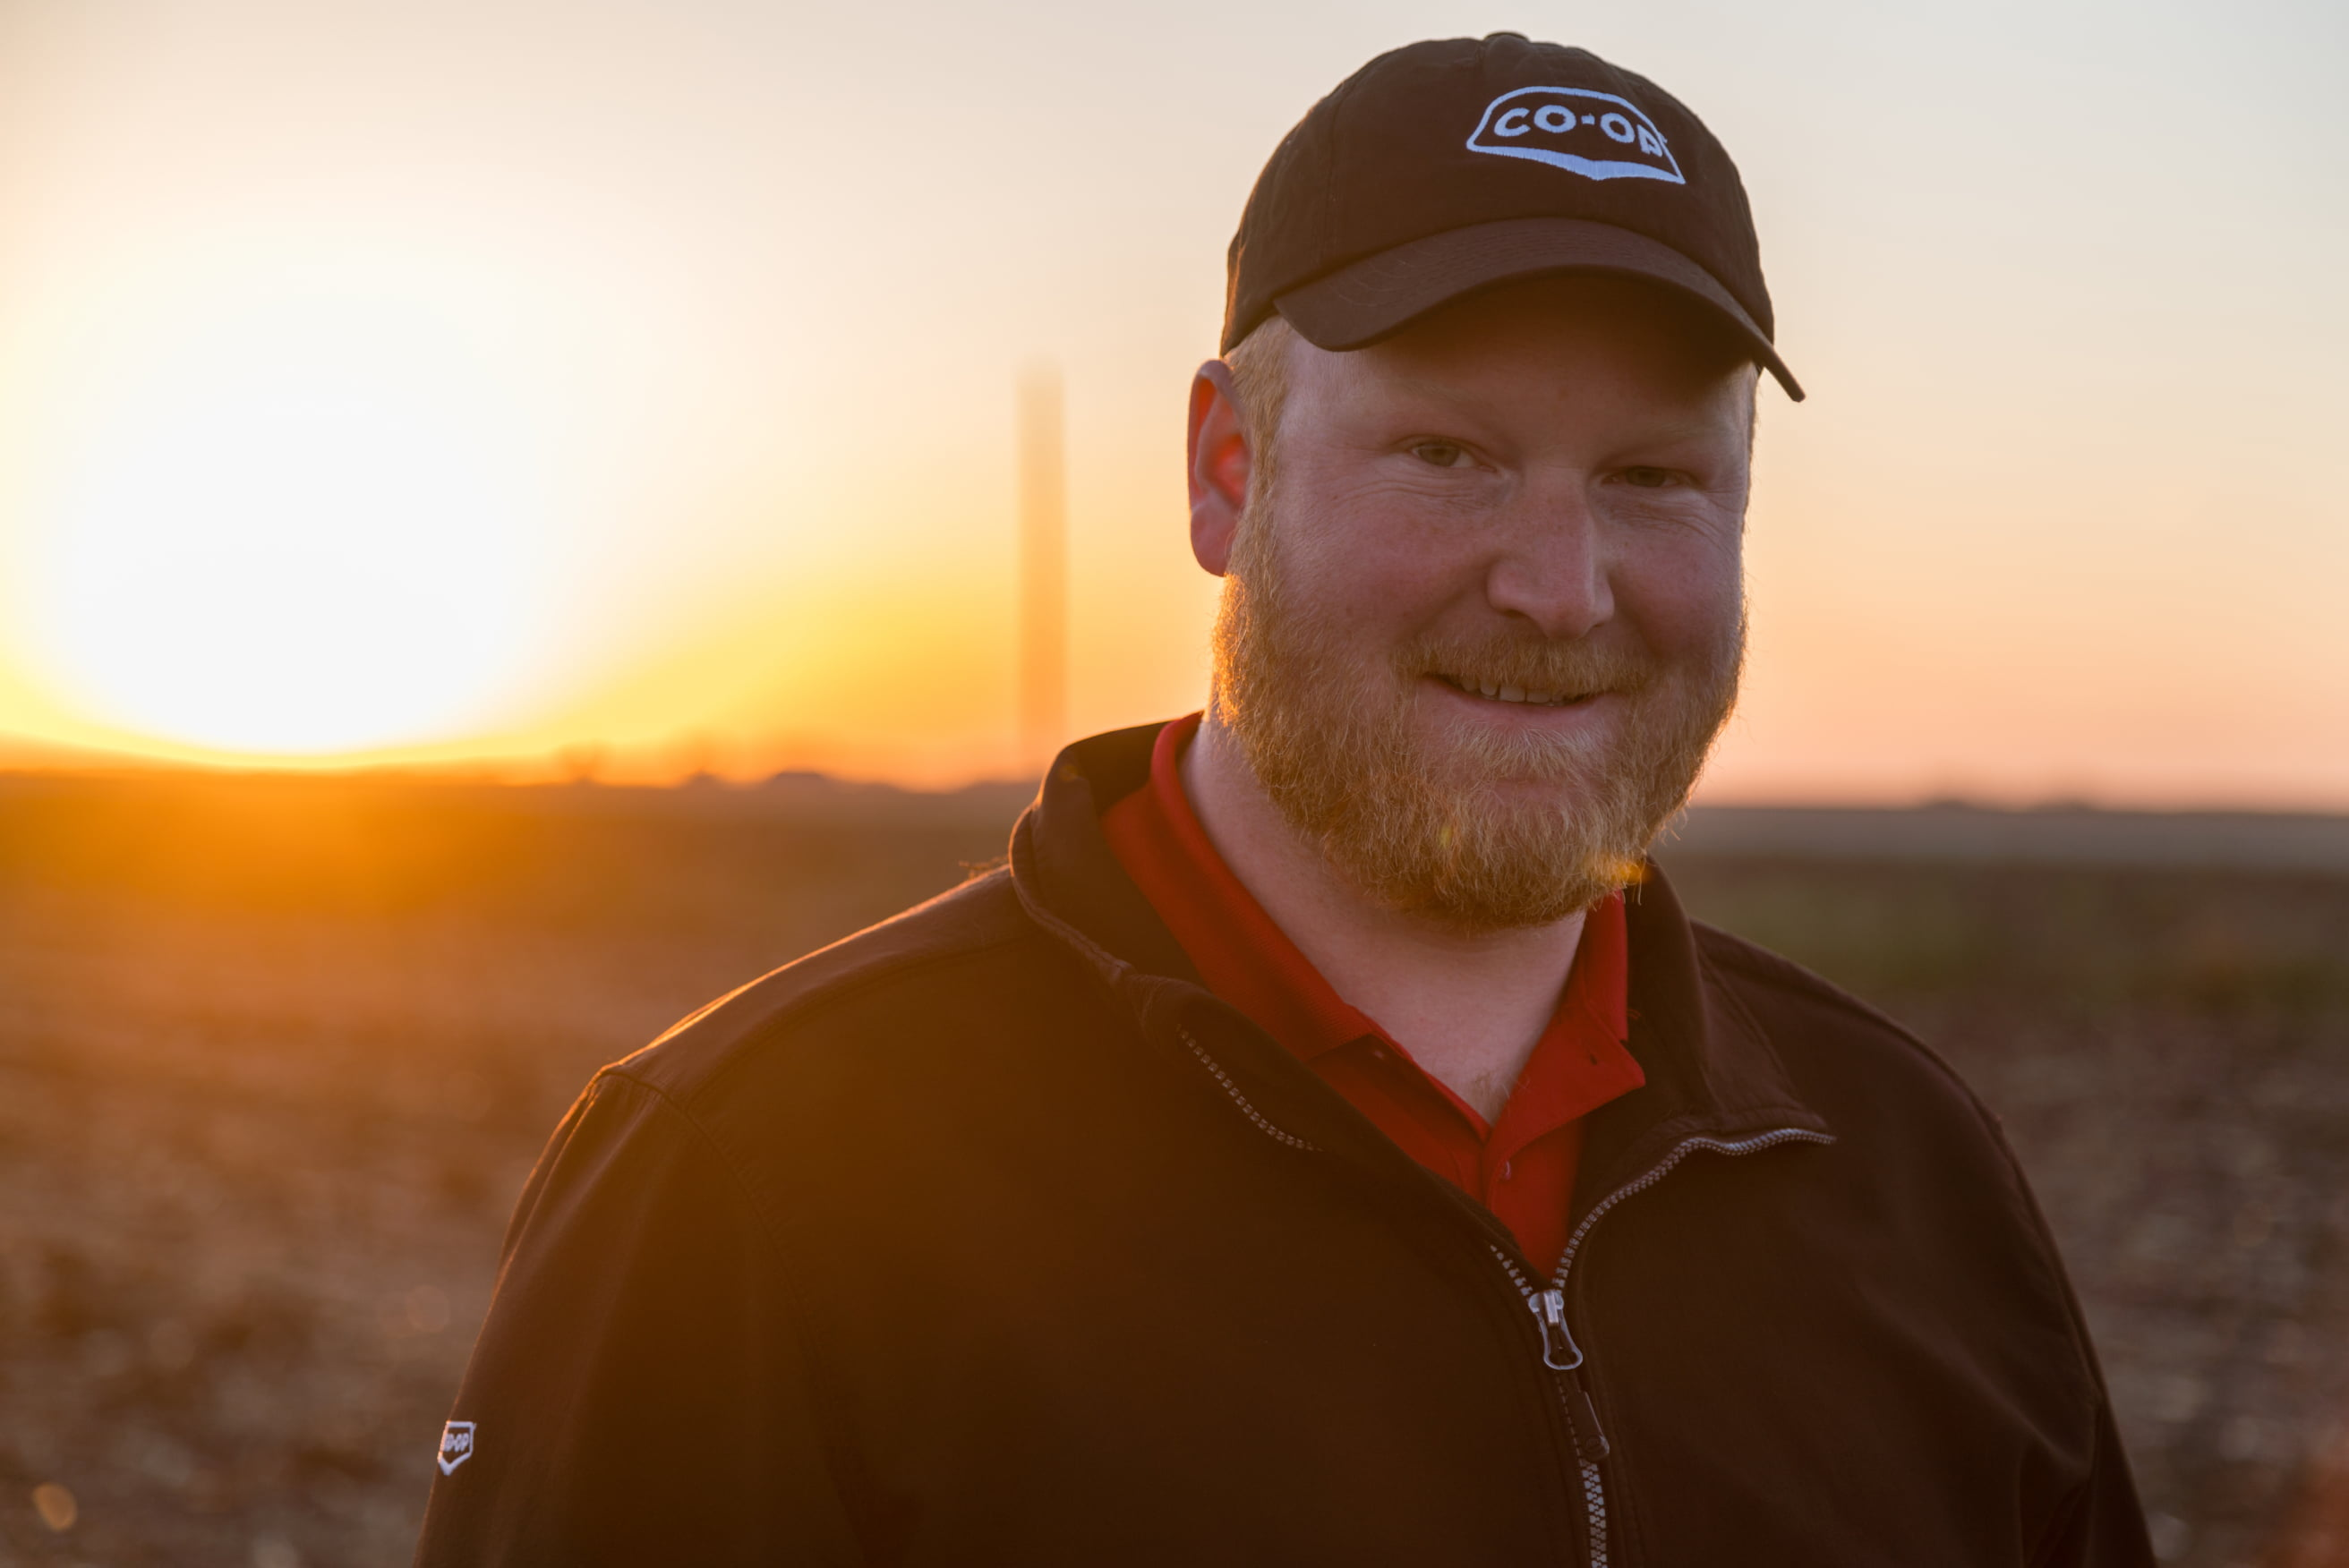 Man with a Co-op ball cap in a field, smiling at the camera with a sunset in the background.